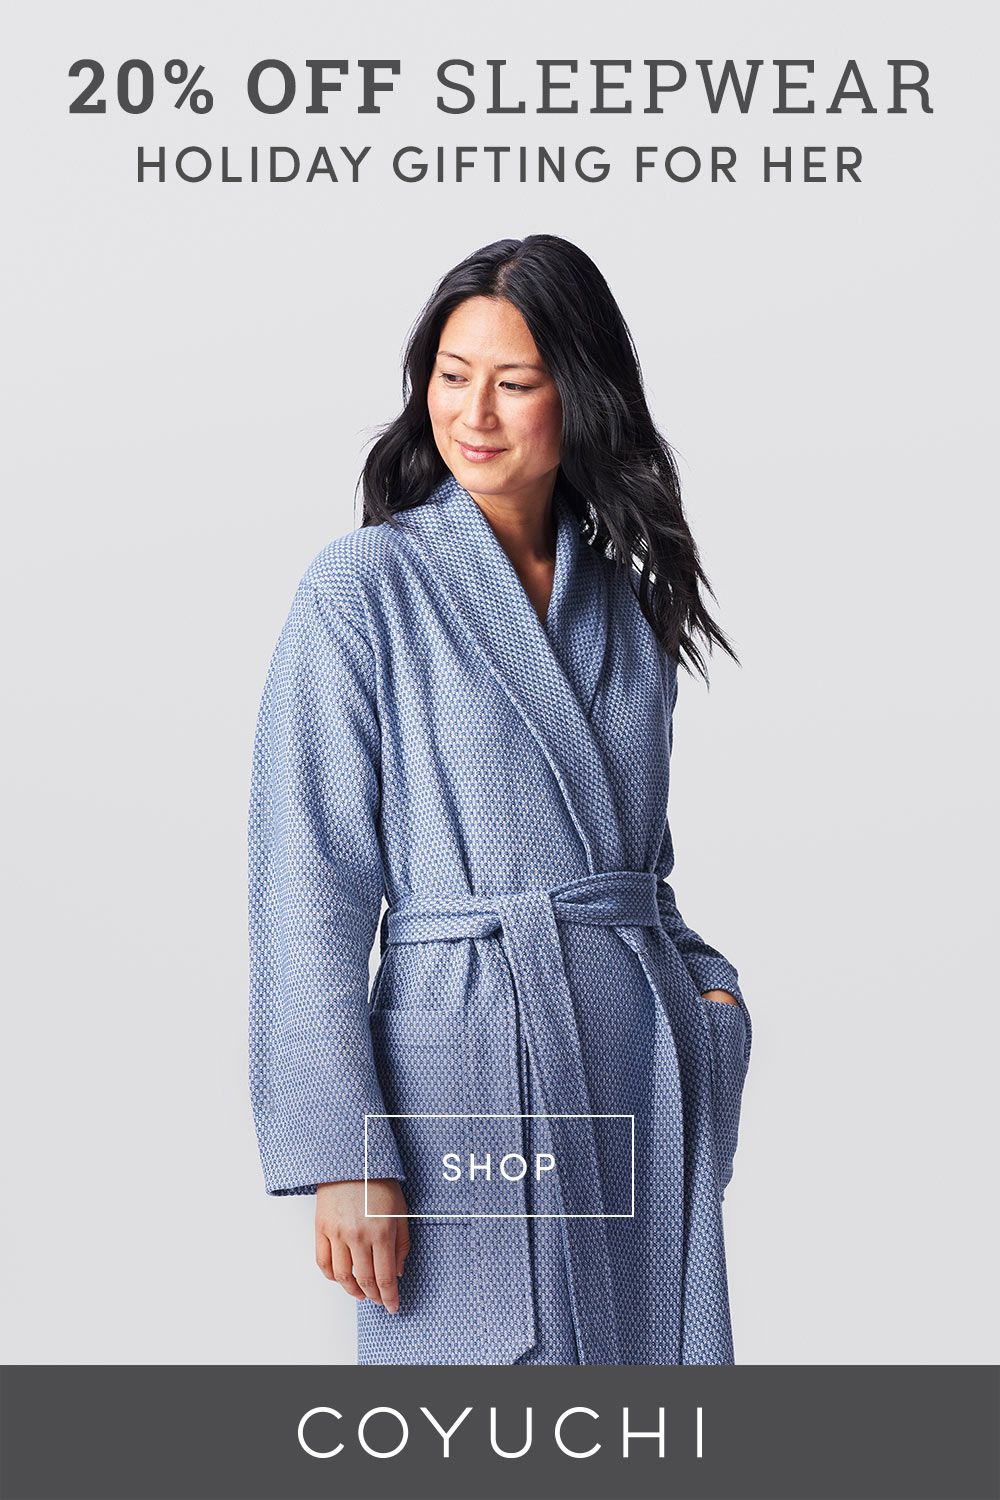 Give warmth with 20% off organic sleepwear + apparel for everyone on your  list during our cozy holiday gifting event. 365-day cozy guarantee. 160ba374a